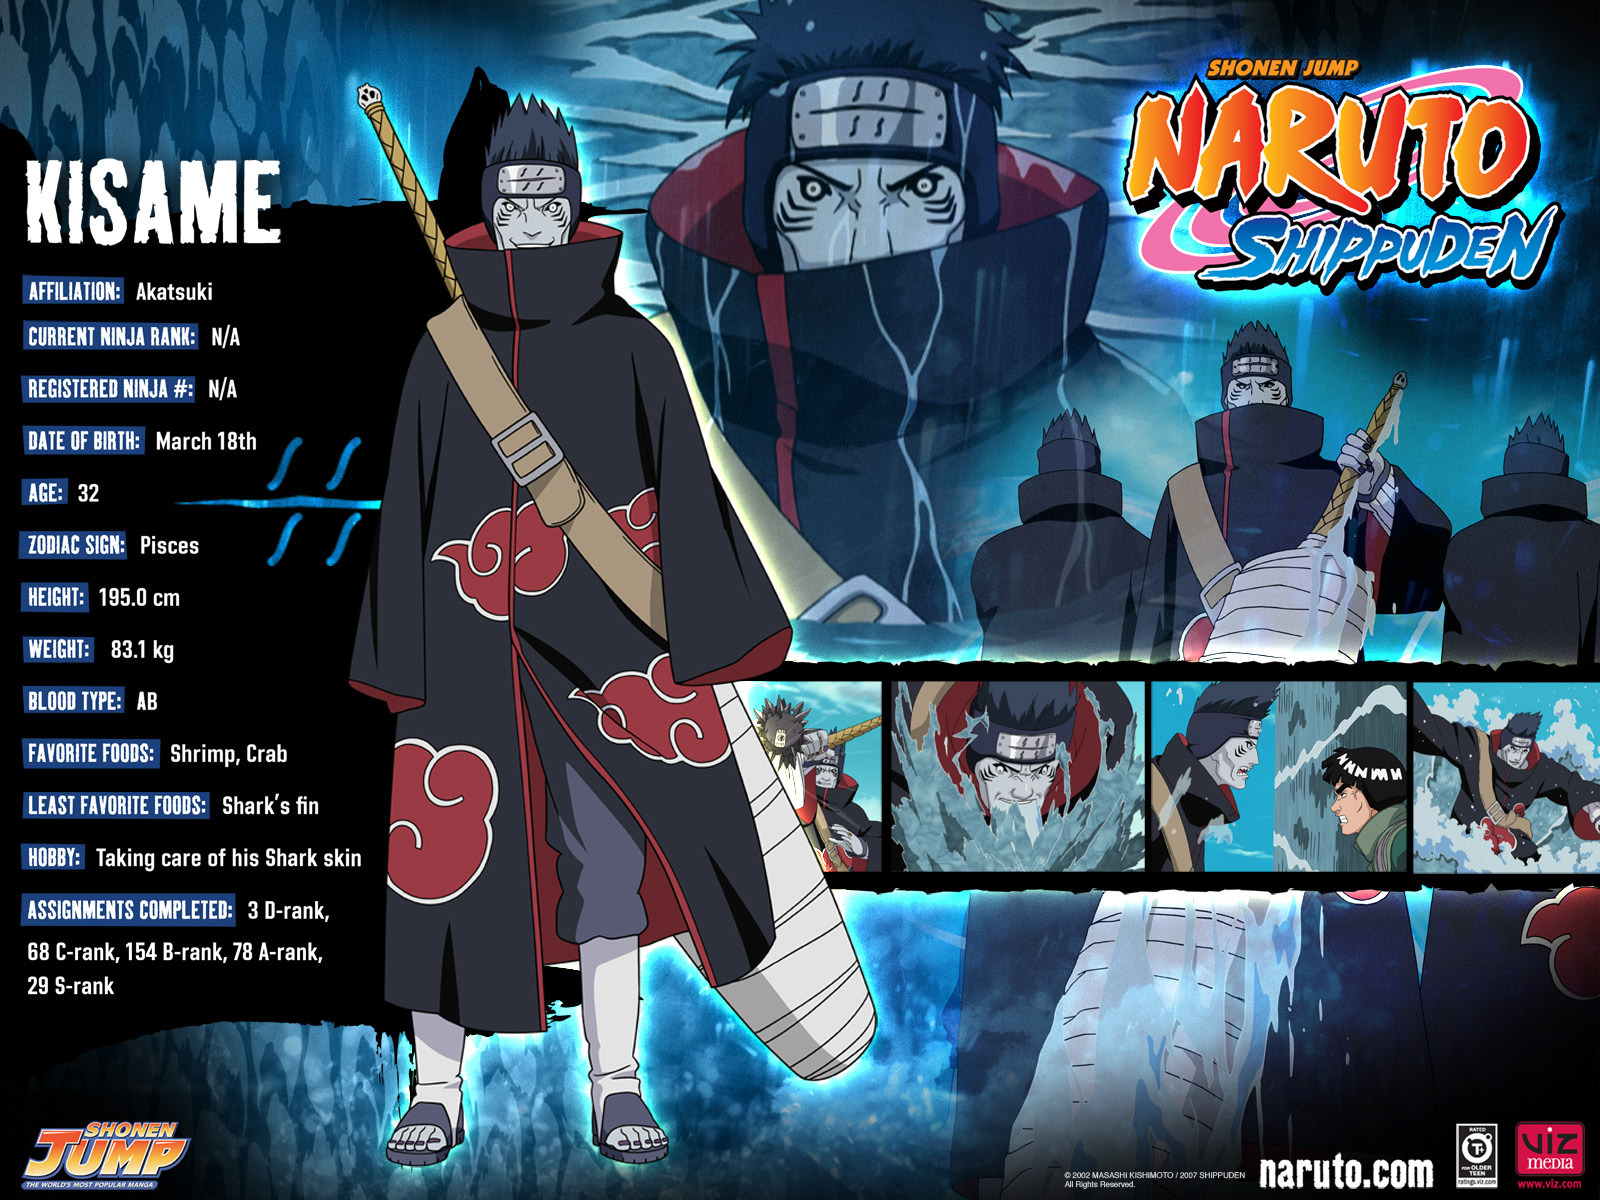 Naruto Shippuden wallpapers HD | PixelsTalk Net